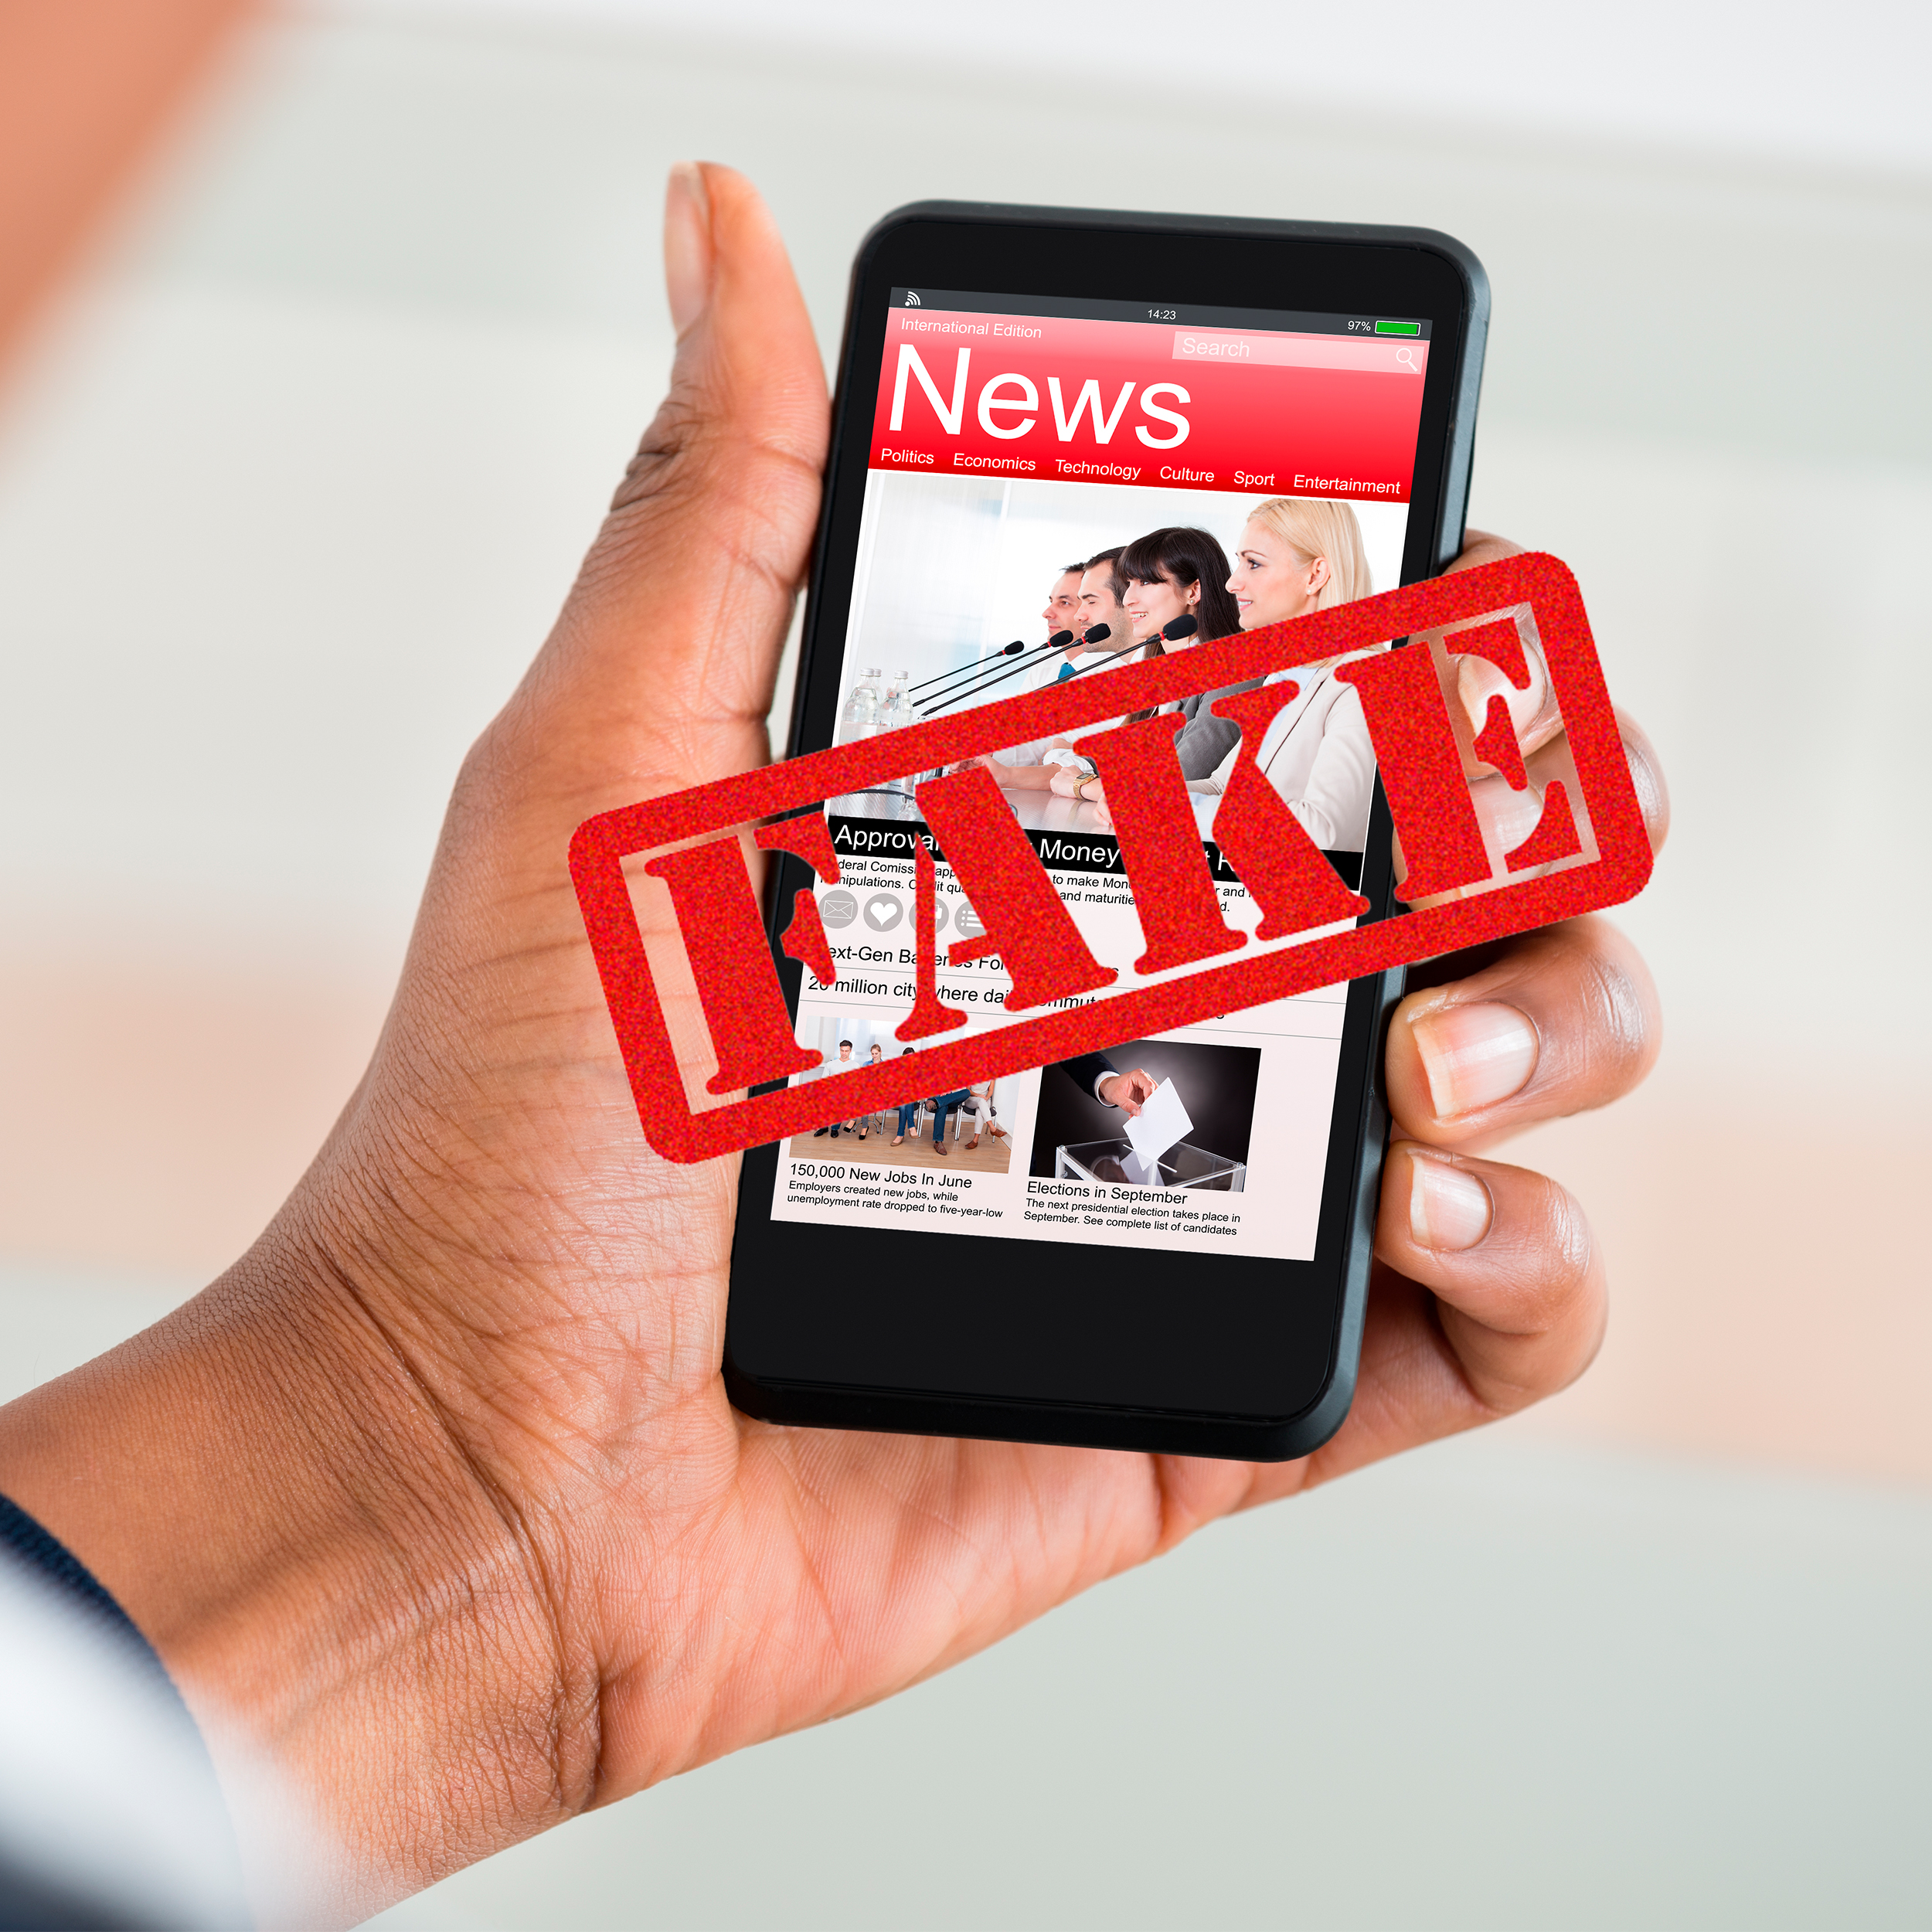 The Fake News Phenomenon and How to Spot it